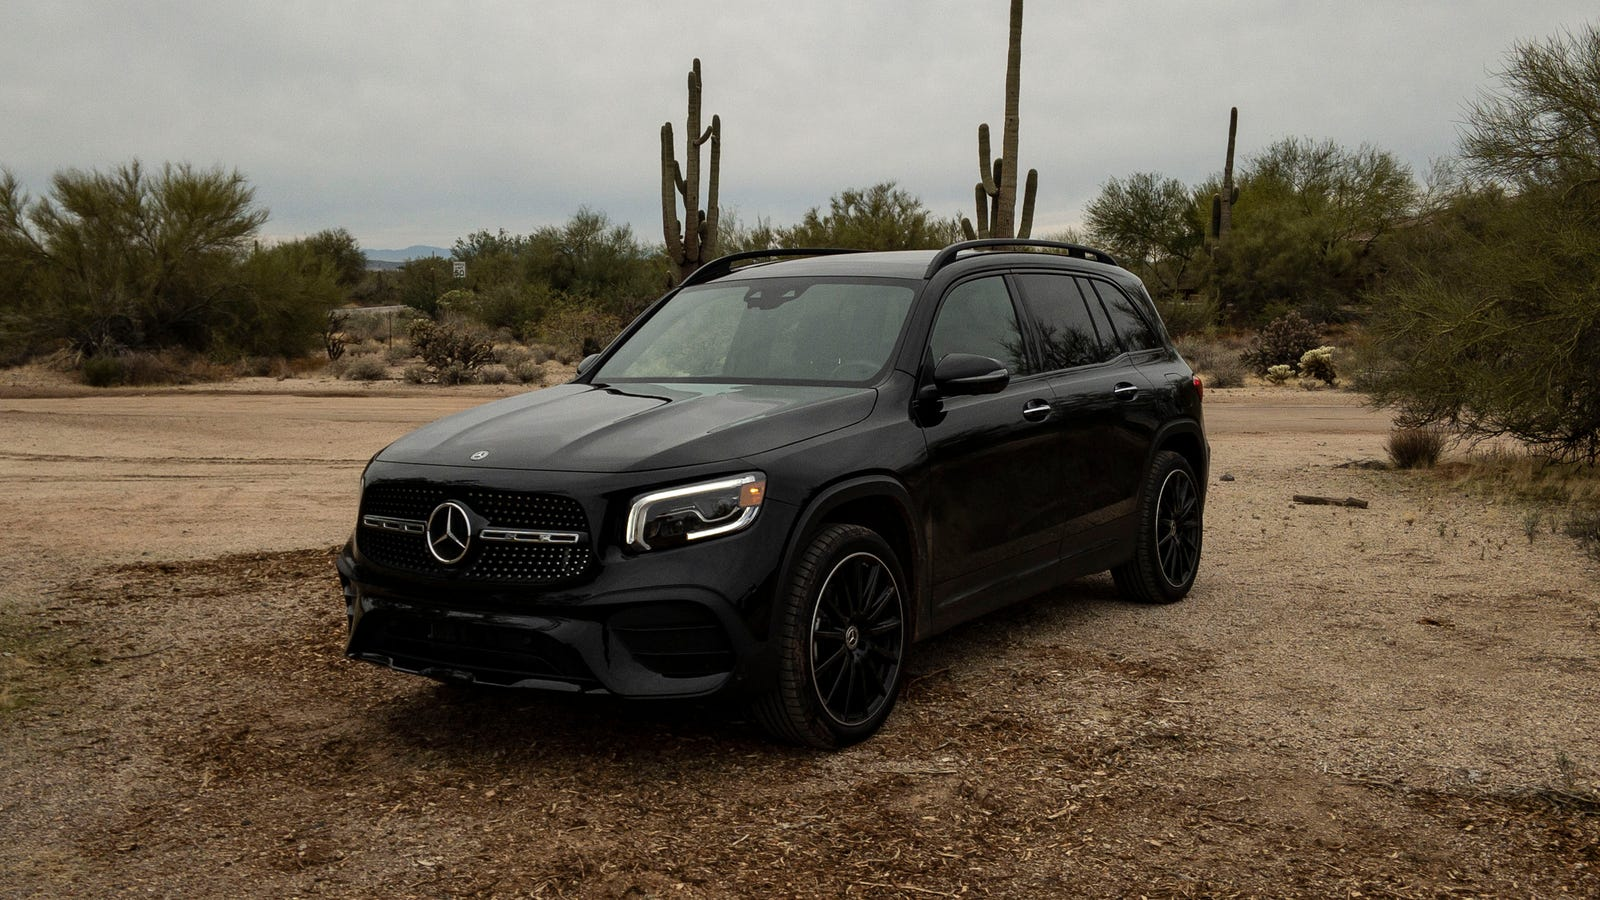 Illustration for article titled The 2020 Mercedes GLB Is A Small SUV That Feels Big In Good Ways